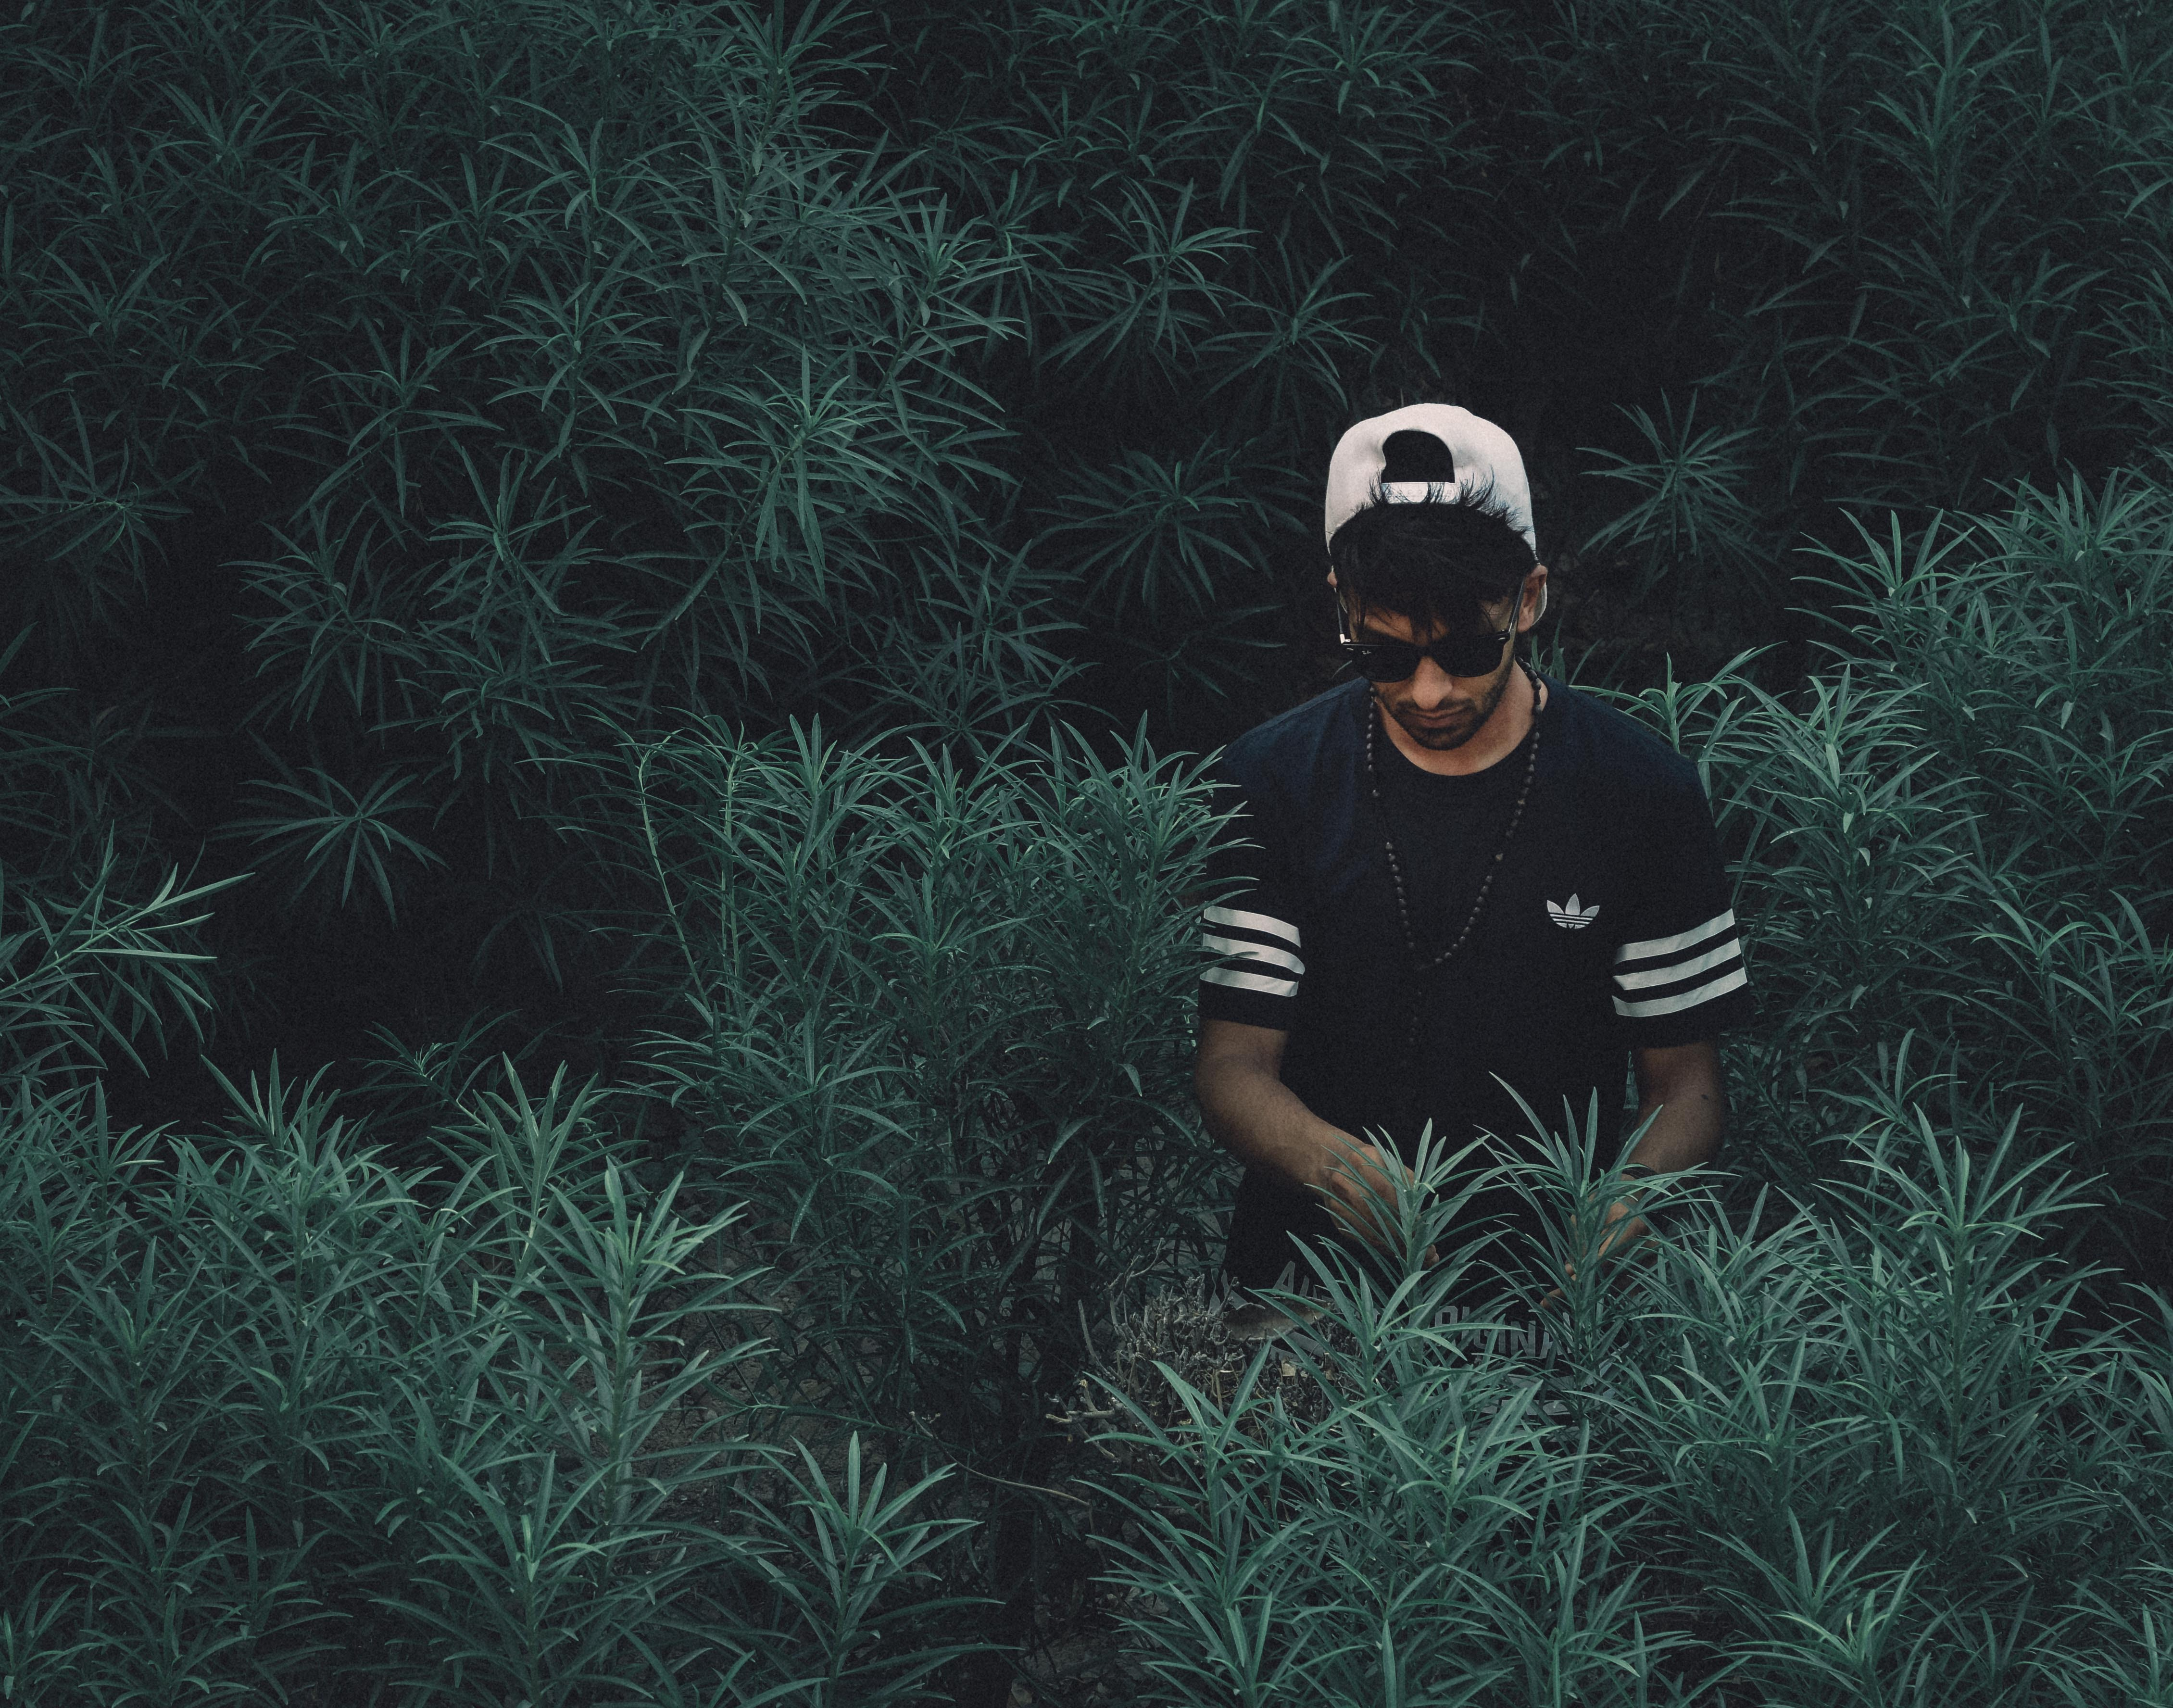 man in the middle of bush